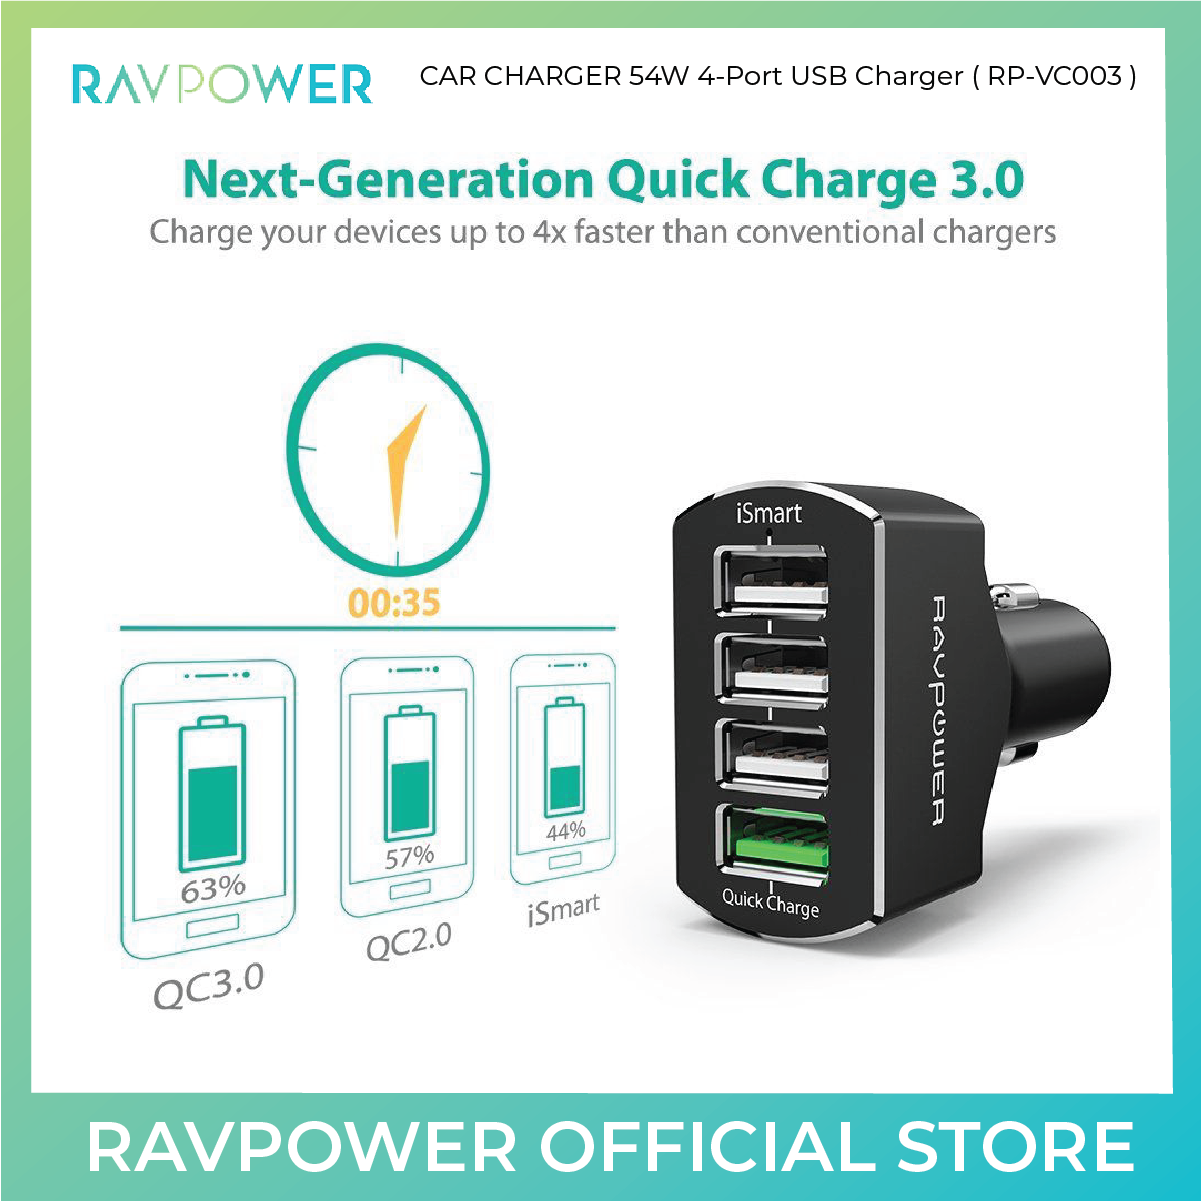 RAVPower 54W 4-Port USB Charger